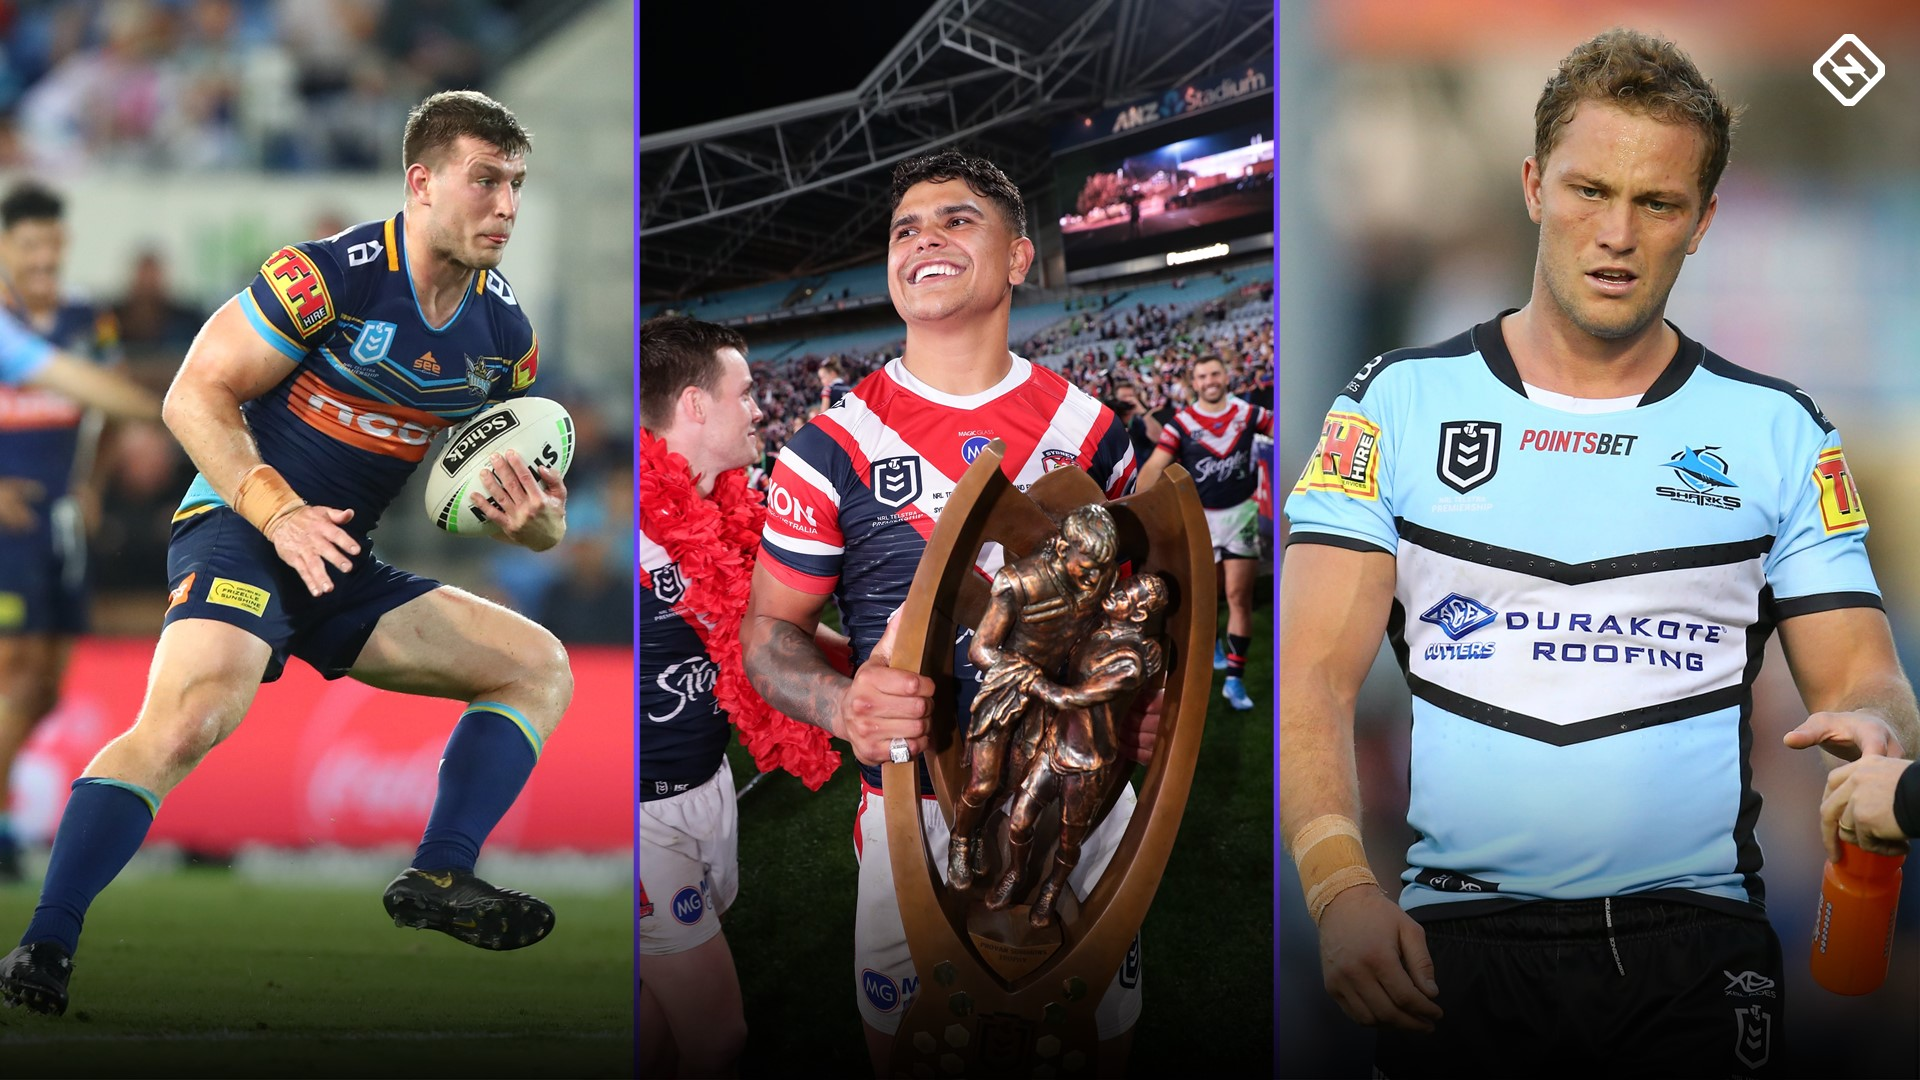 Nrl 2020 Squads For Every Side In Round 1 This Season Sporting News Australia